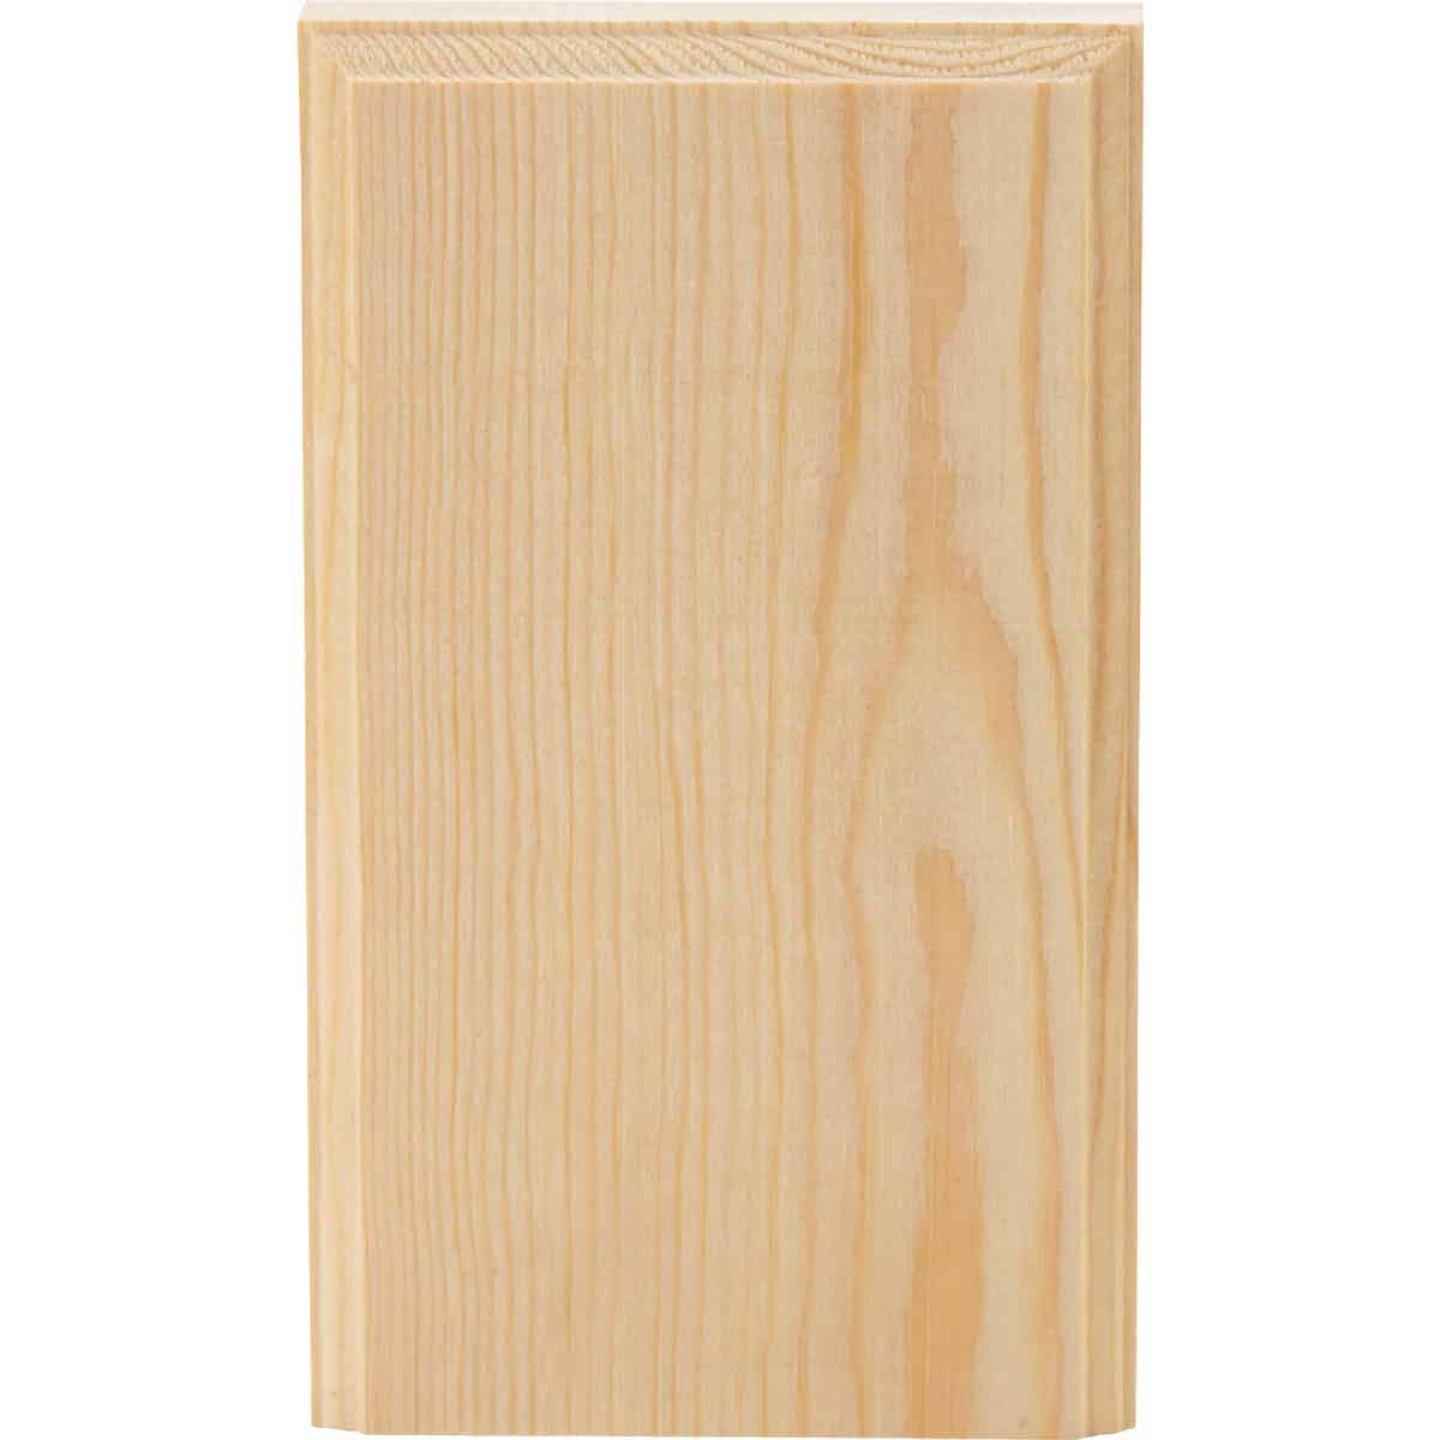 House of Fara 7/8 In. W. x 3-1/2 In. H. x 6 In. L. Pine Plinth Block Image 4